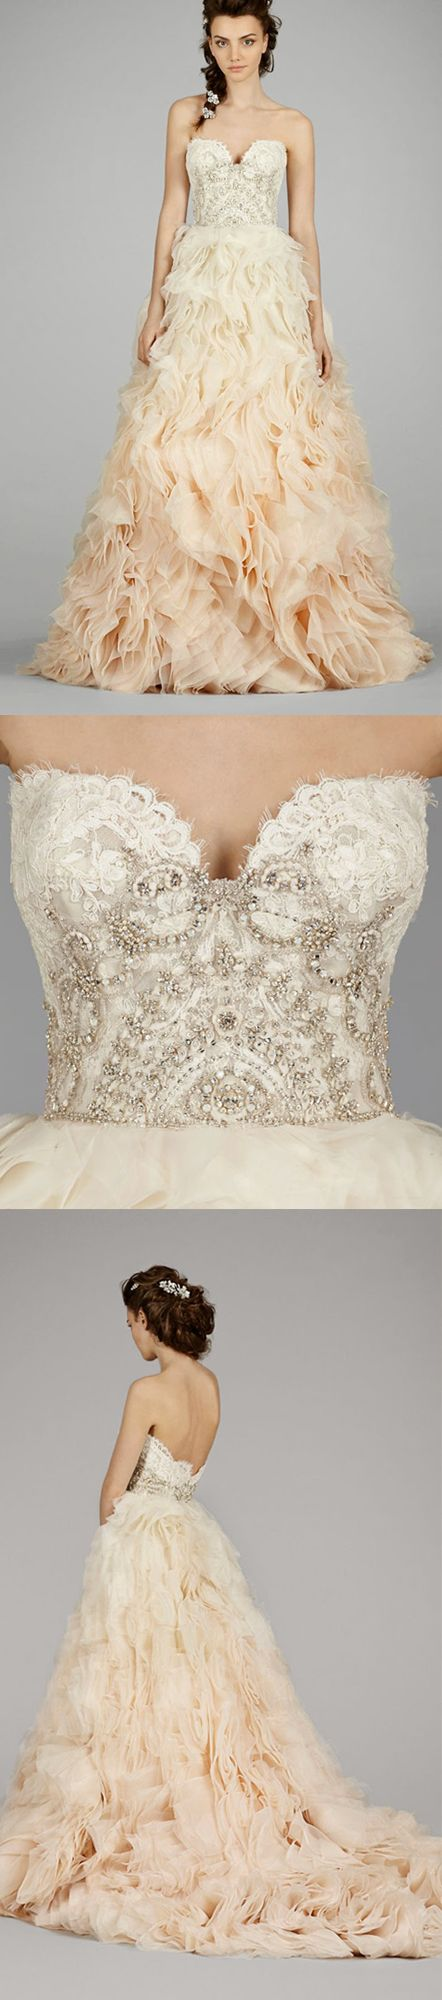 120 best Brautkleider images on Pinterest | Gown wedding, Wedding ...